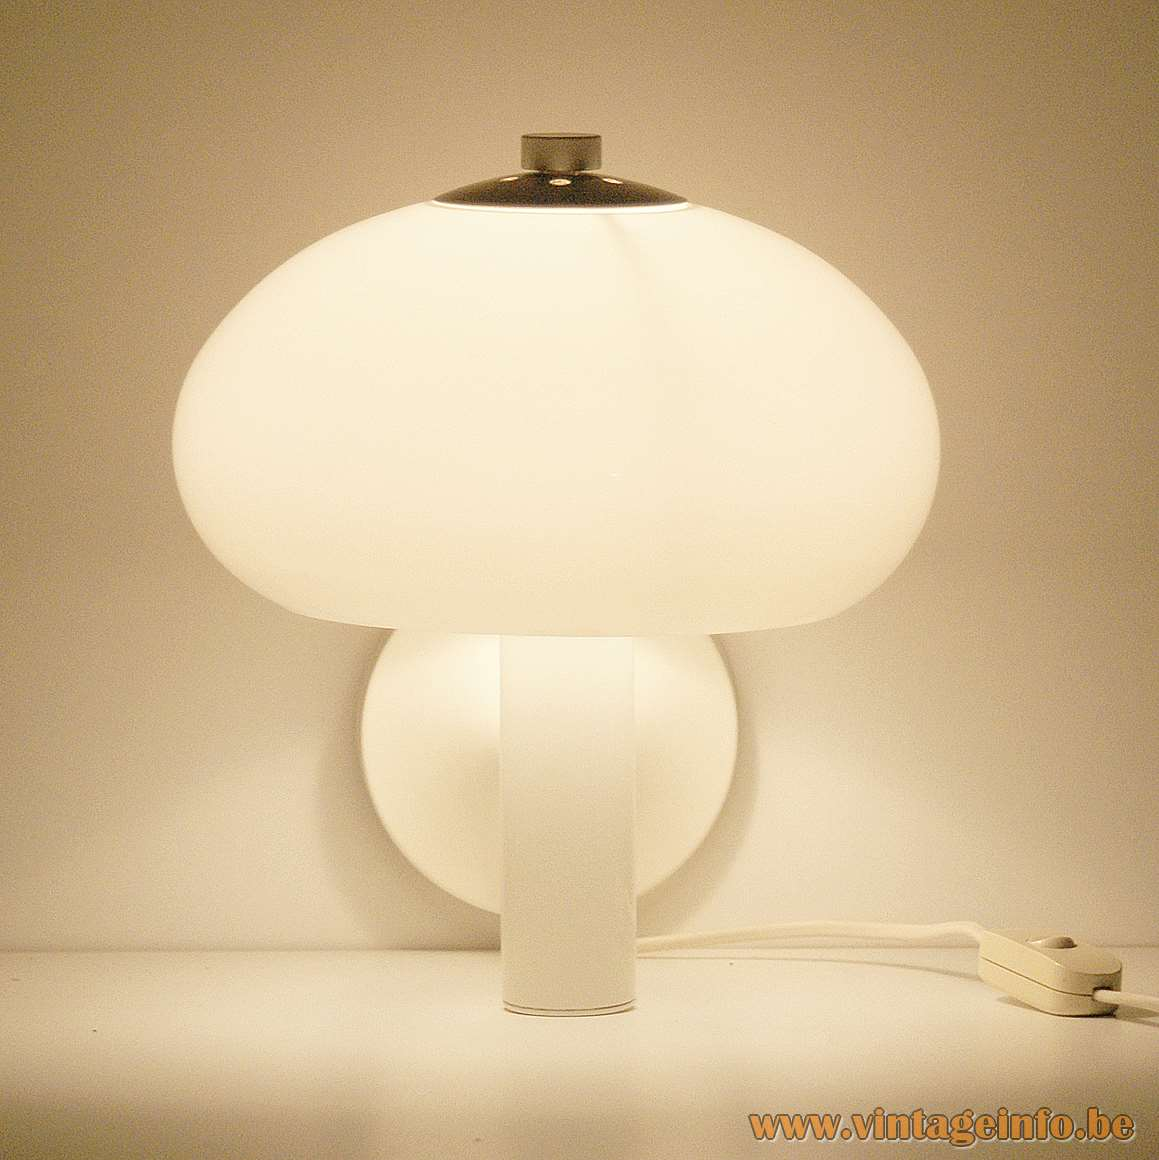 Acrylic Mushroom Wall Lamp white plastic and metal produced by MAssive, Belgium 1970s 1980s MCM